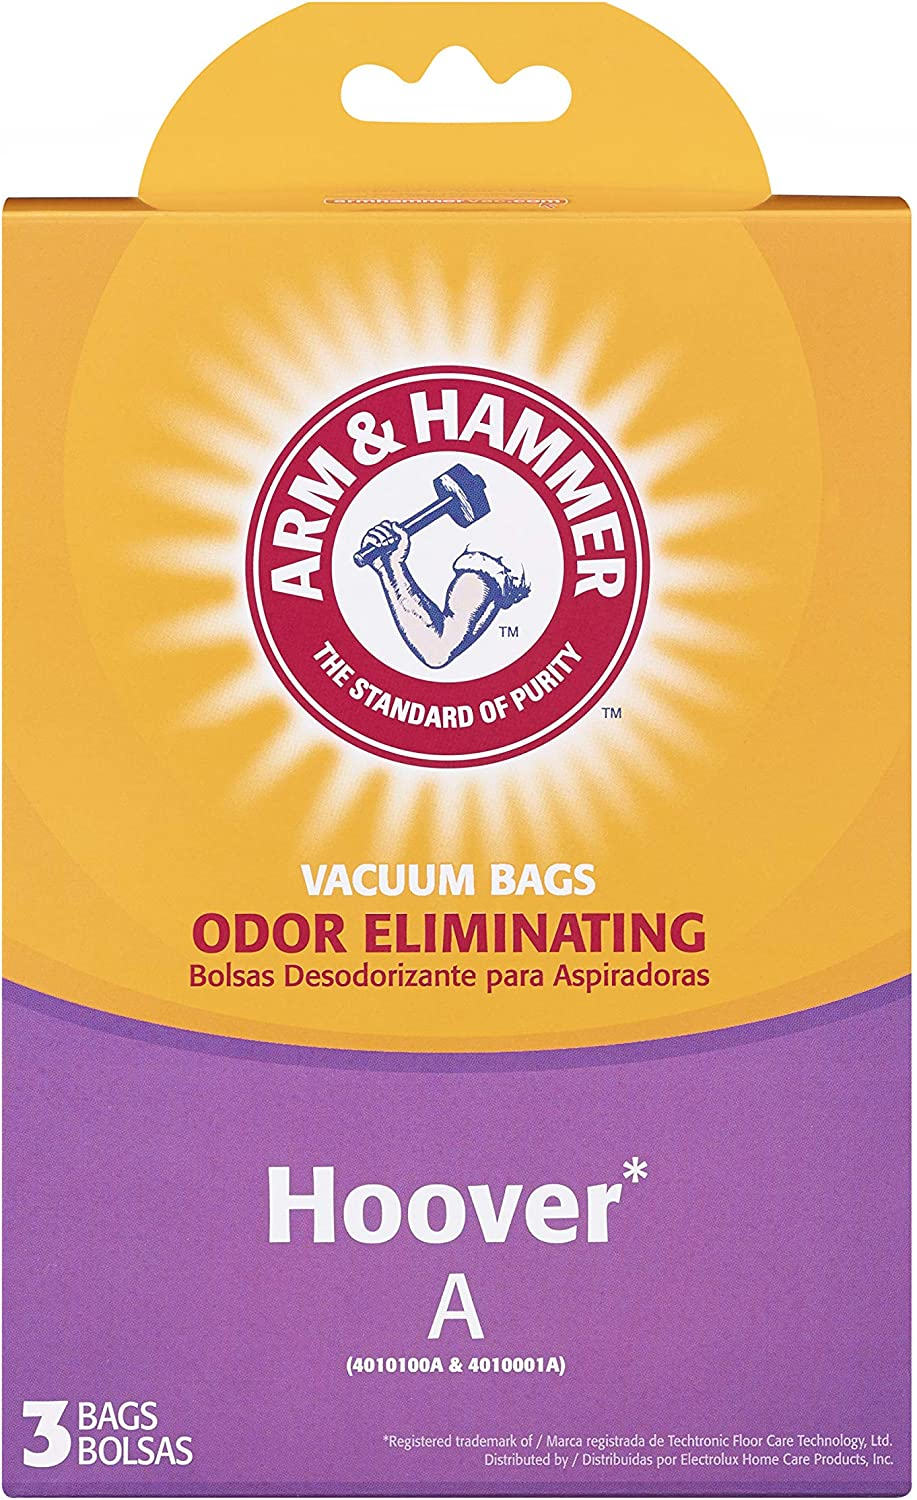 Arm & Hammer Hoover Type A/Bissell Style 2 Standard Allergen Vacuum Bag (3 Pack), White